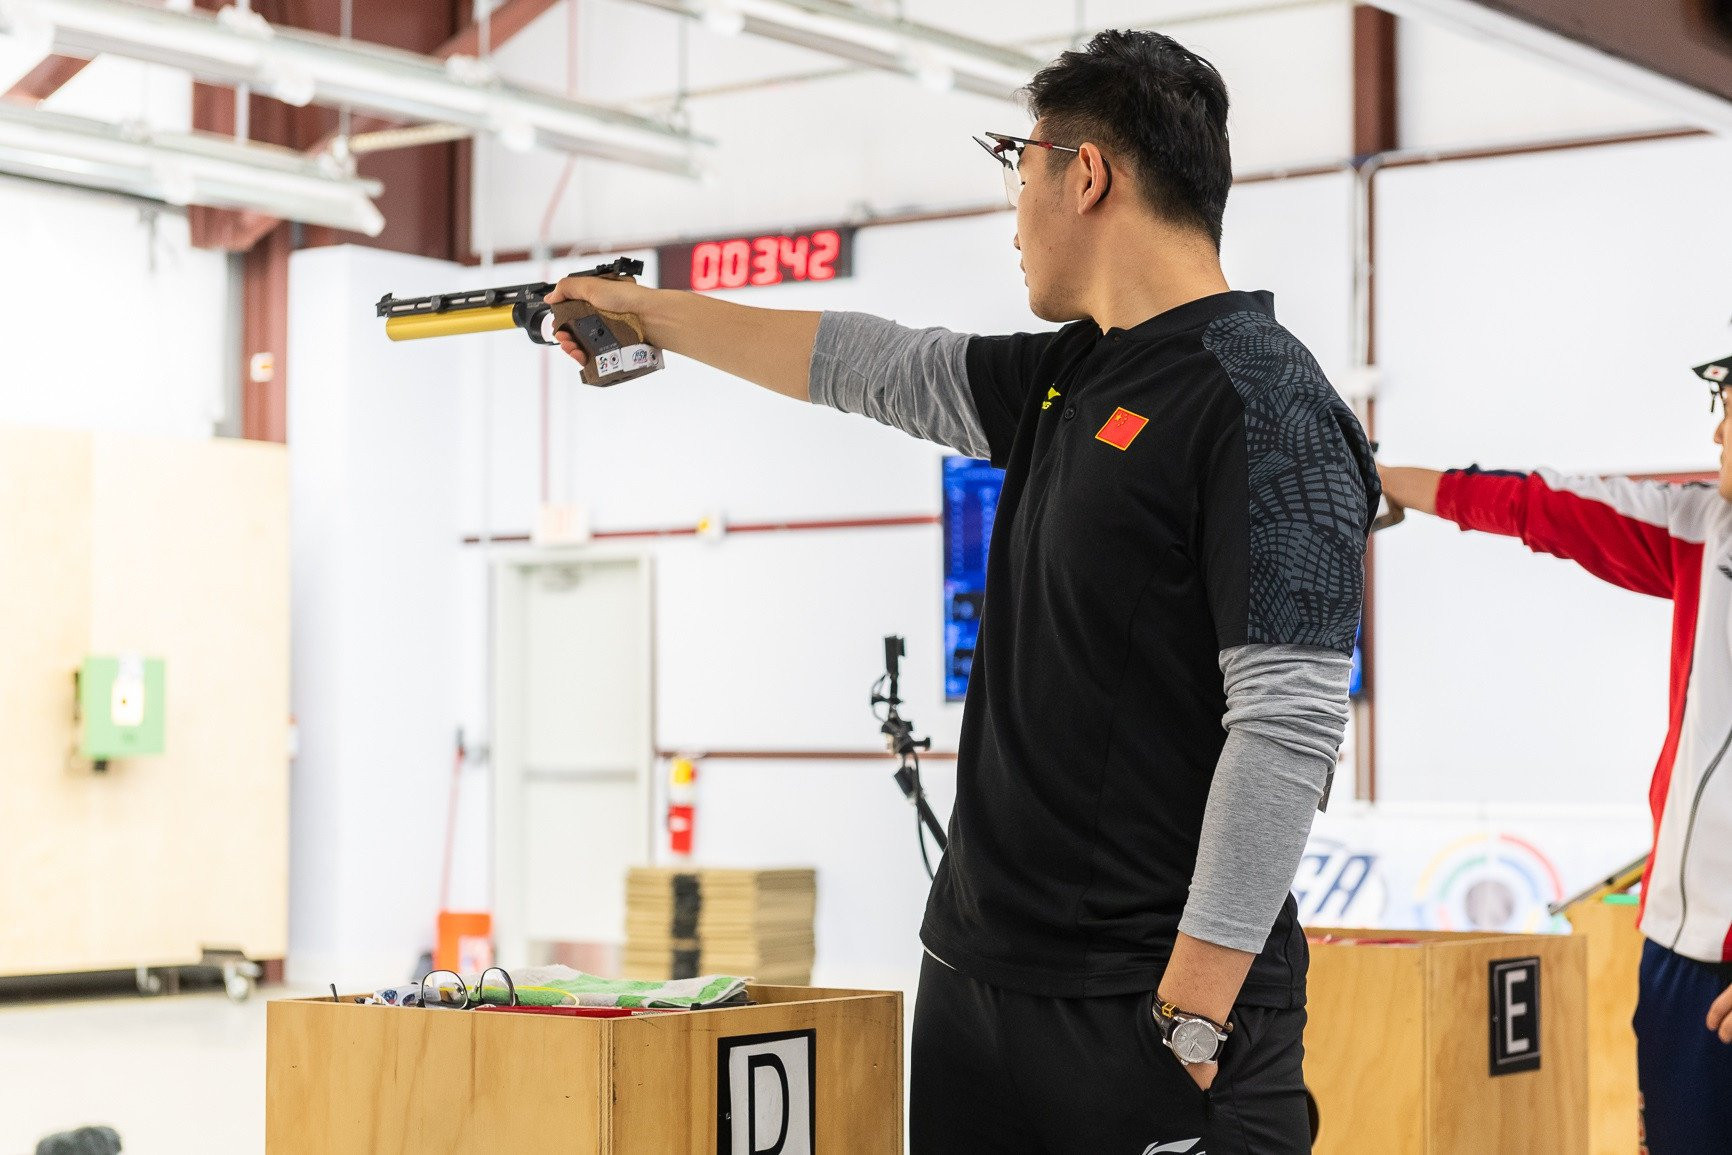 China earn air pistol honours at Asian Airgun Championships